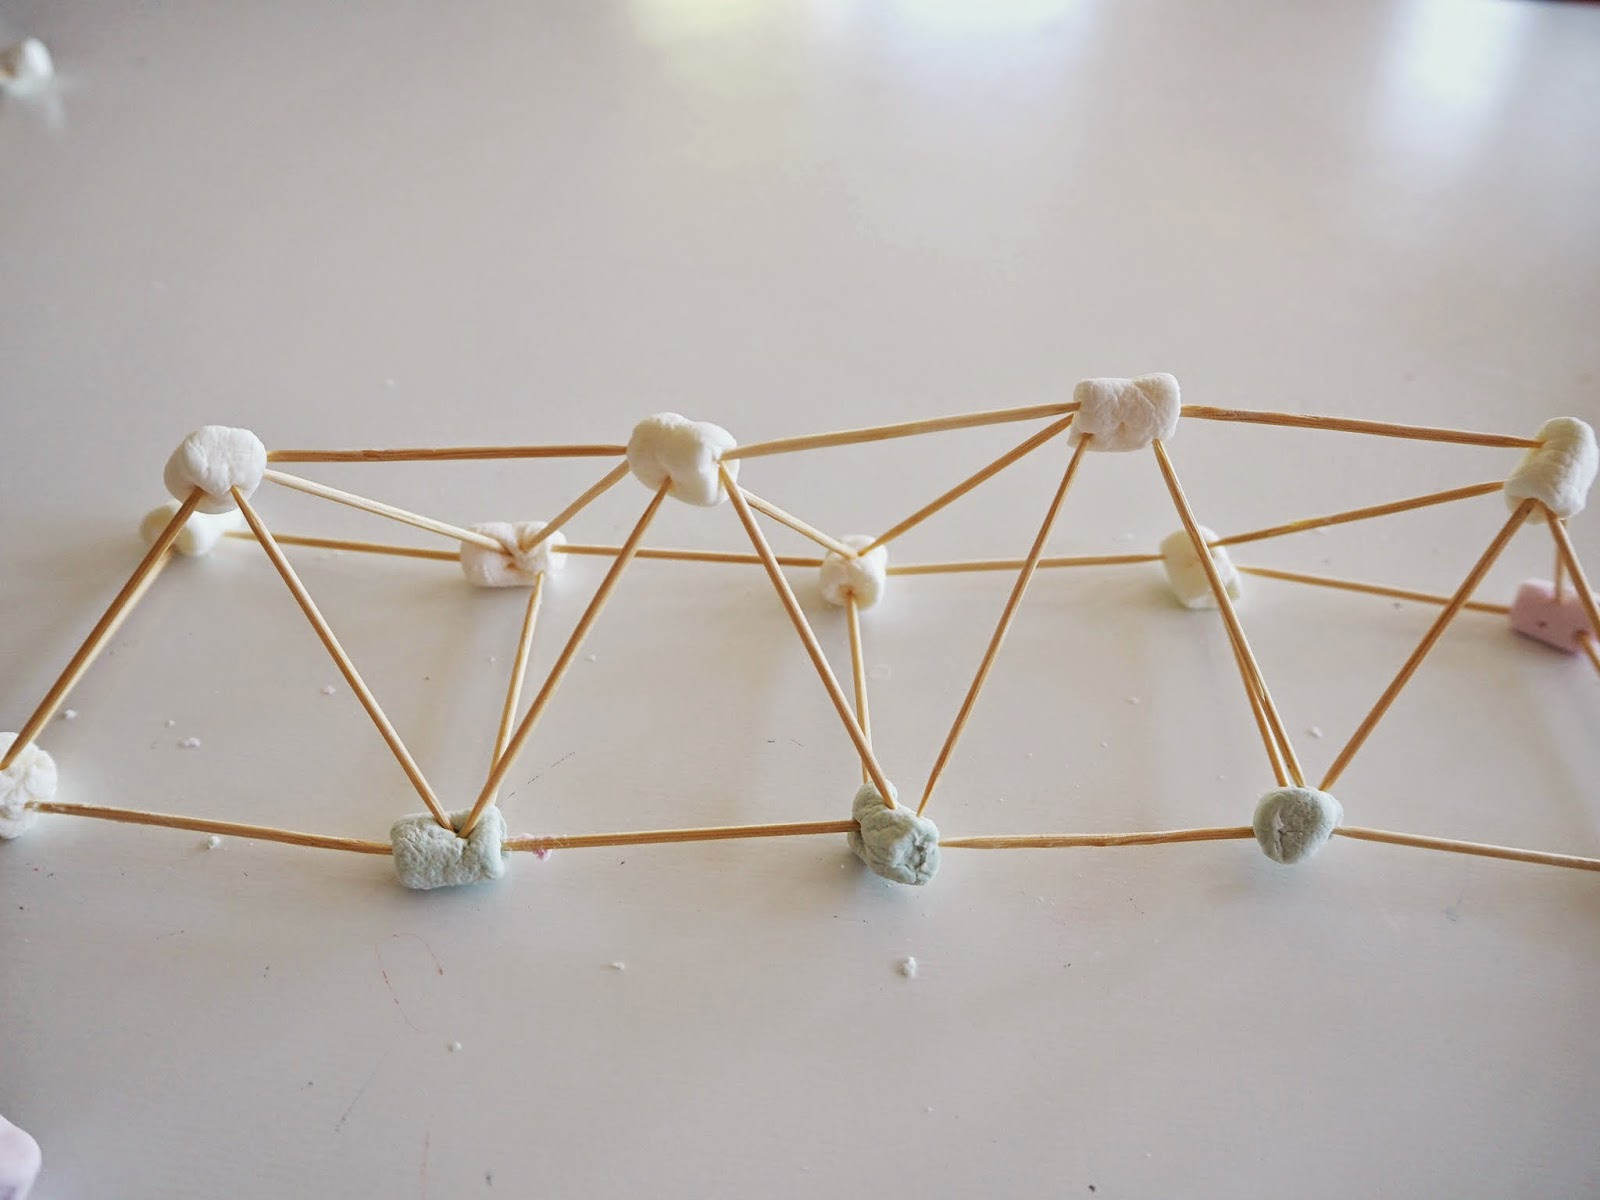 image about Building With Toothpicks and Marshmallows Printable referred to as Master with Perform at Household: Mini-marshmallow and toothpick